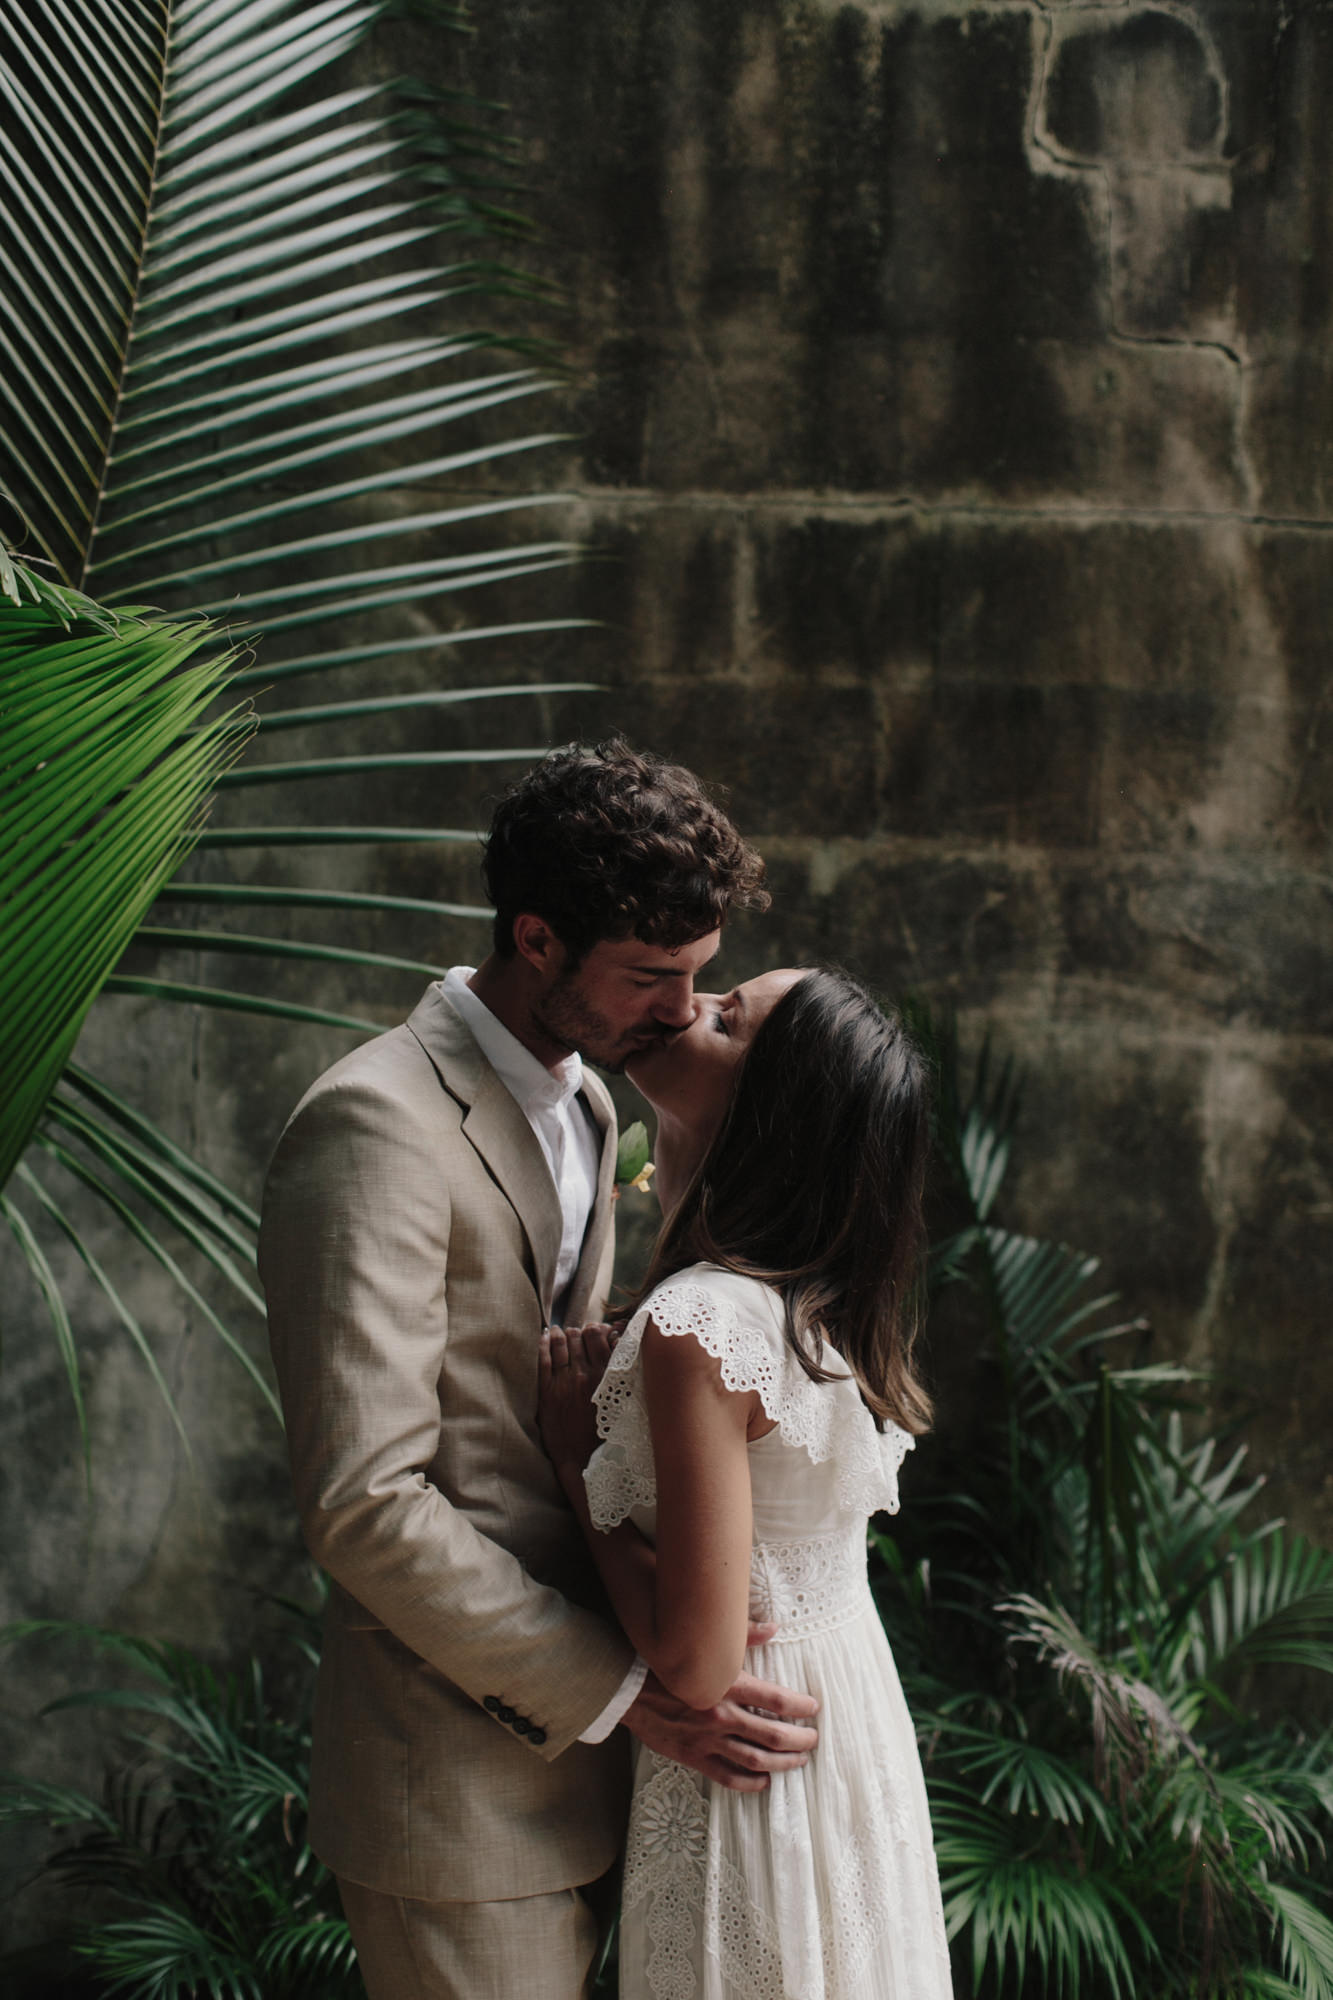 Couple kissing under palm frond - photo by James Moes